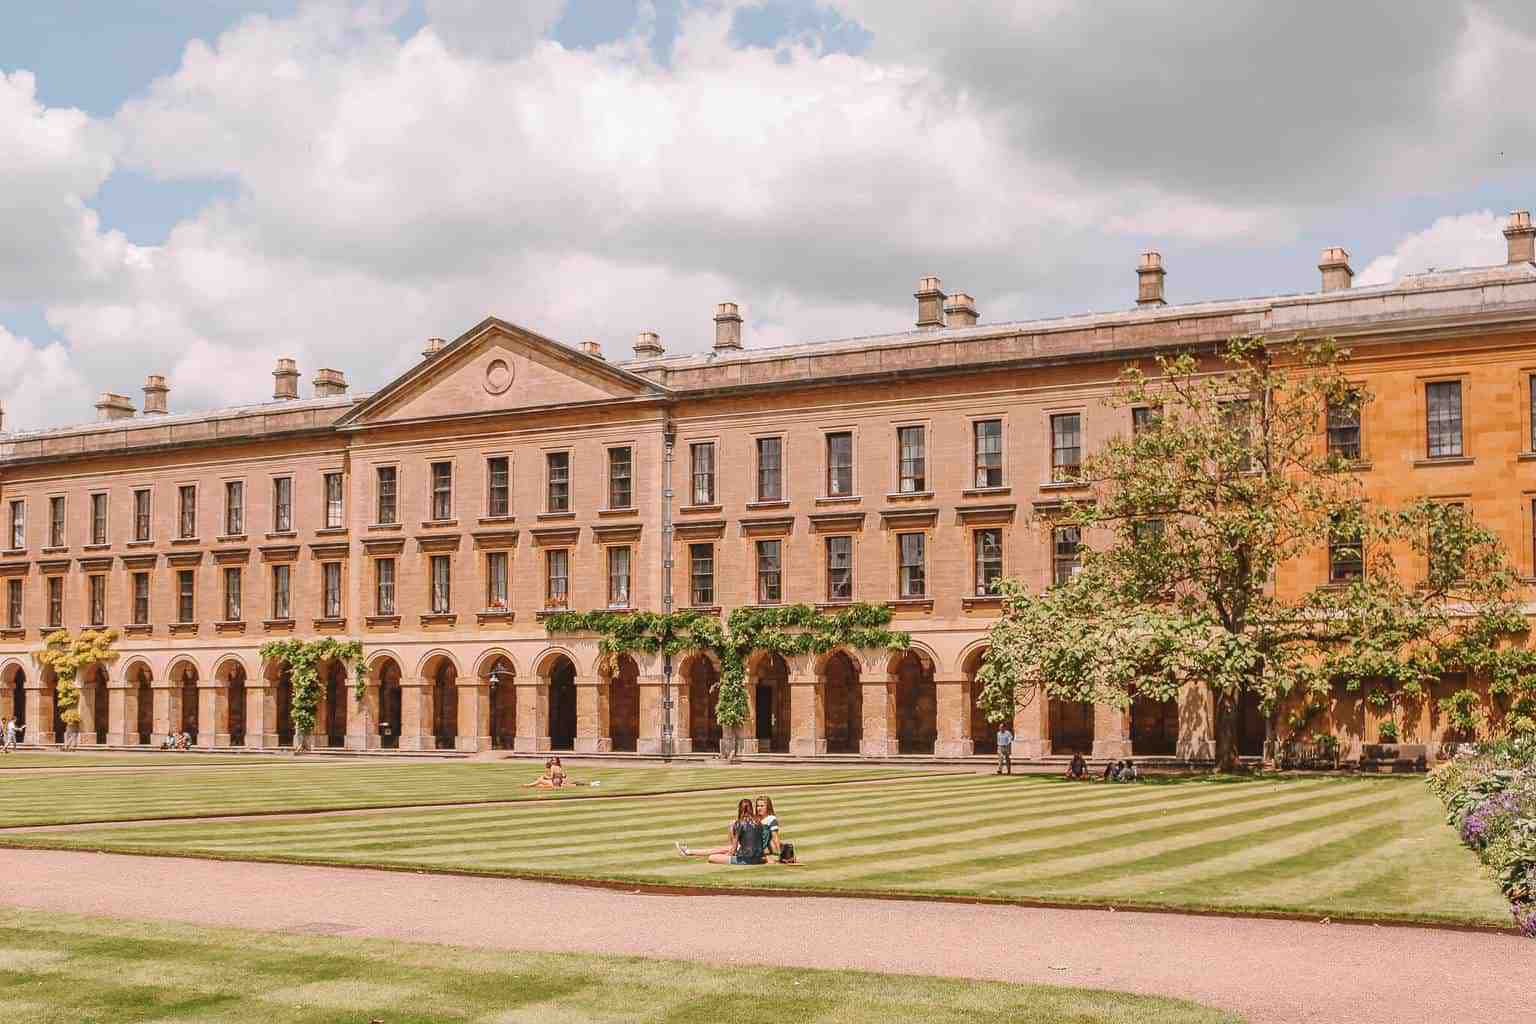 Magdalen College - 10 Most Beautiful Colleges at Oxford University According to a Student